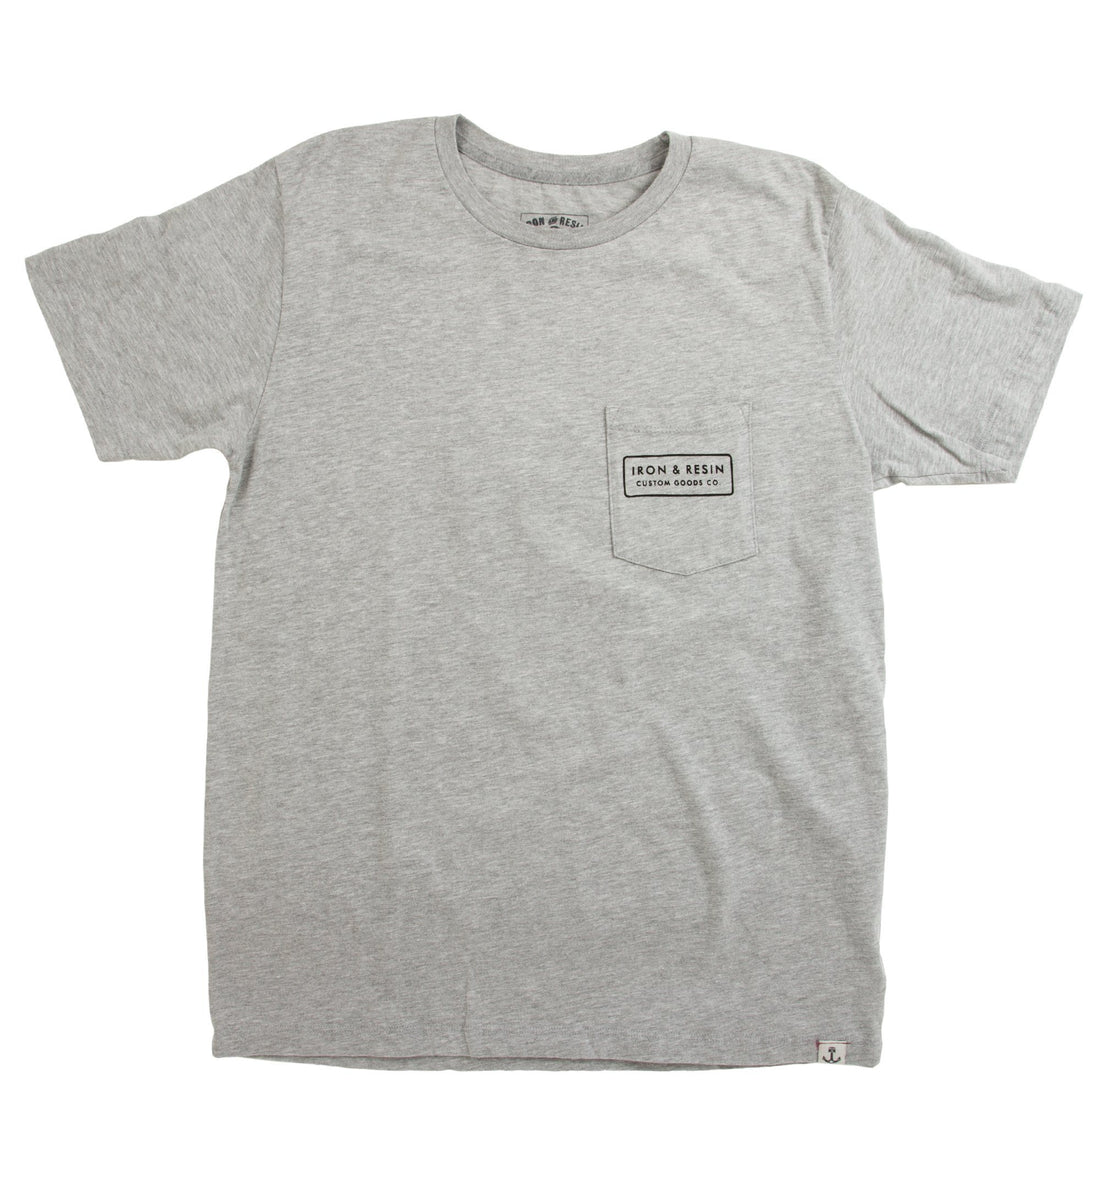 Standard Pocket Tee - Tops - Iron and Resin